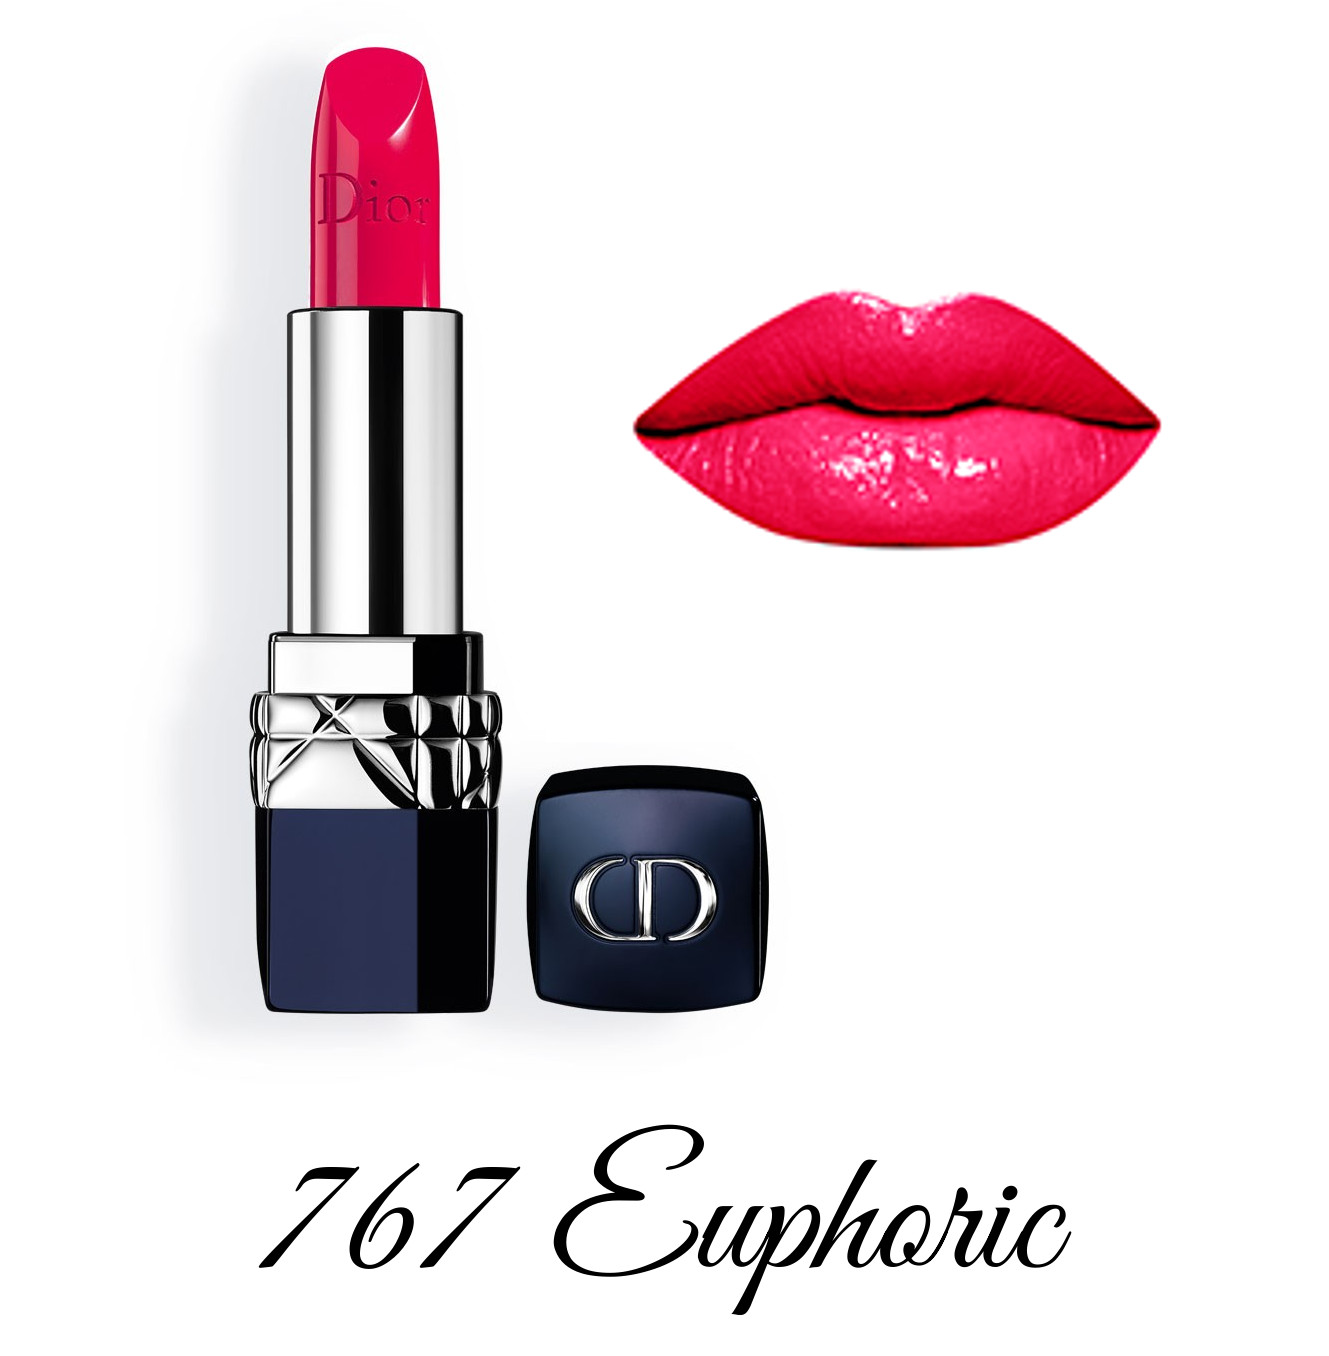 Dior Spring 2018 Collection GLOW ADDICT Rouge Dior 767 Euphoric